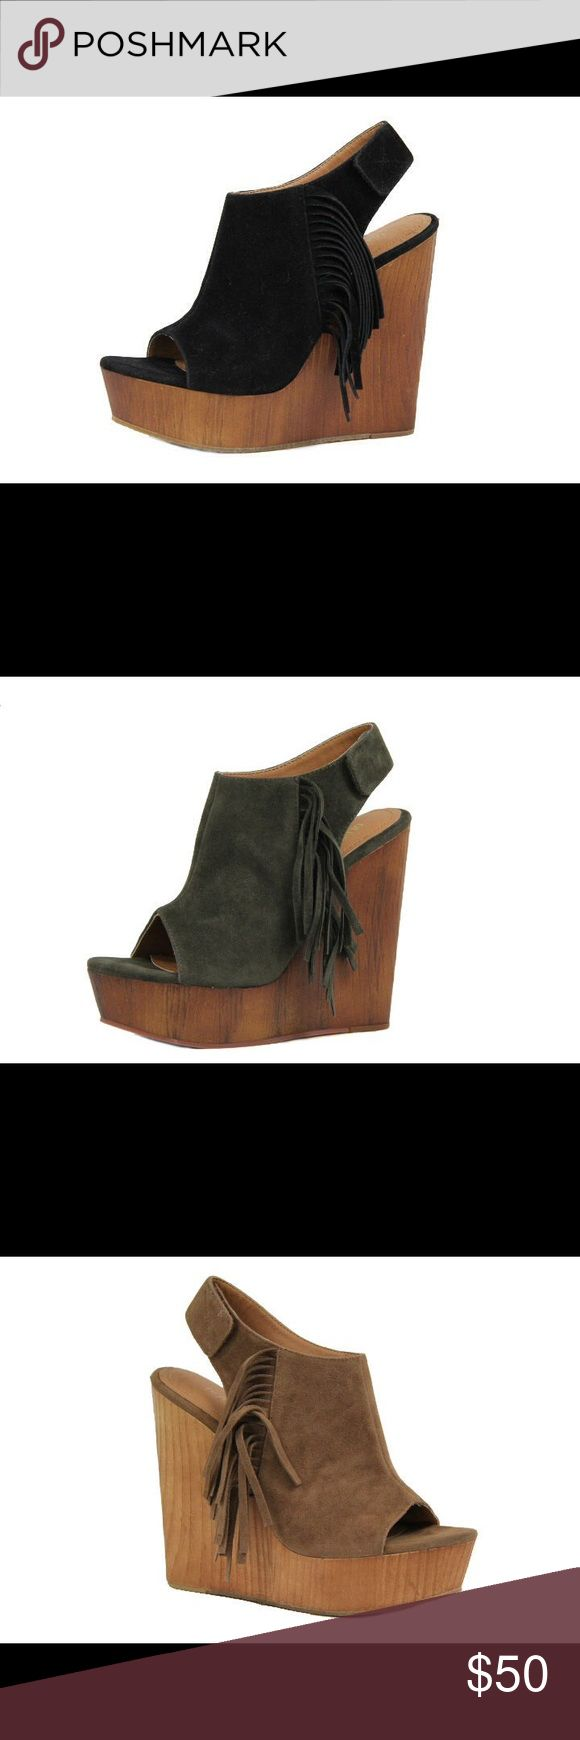 Ladies wedge sandal with side fringe. Black.NIB Very stylish and comfy ladies wedge sandal with side fringe. Around 5 inches heels. Brand new in box, Black color and available also in olive and camel colors and listed in my closet. Man made suede. NO TRADES shoeroom21 boutique Shoes Wedges